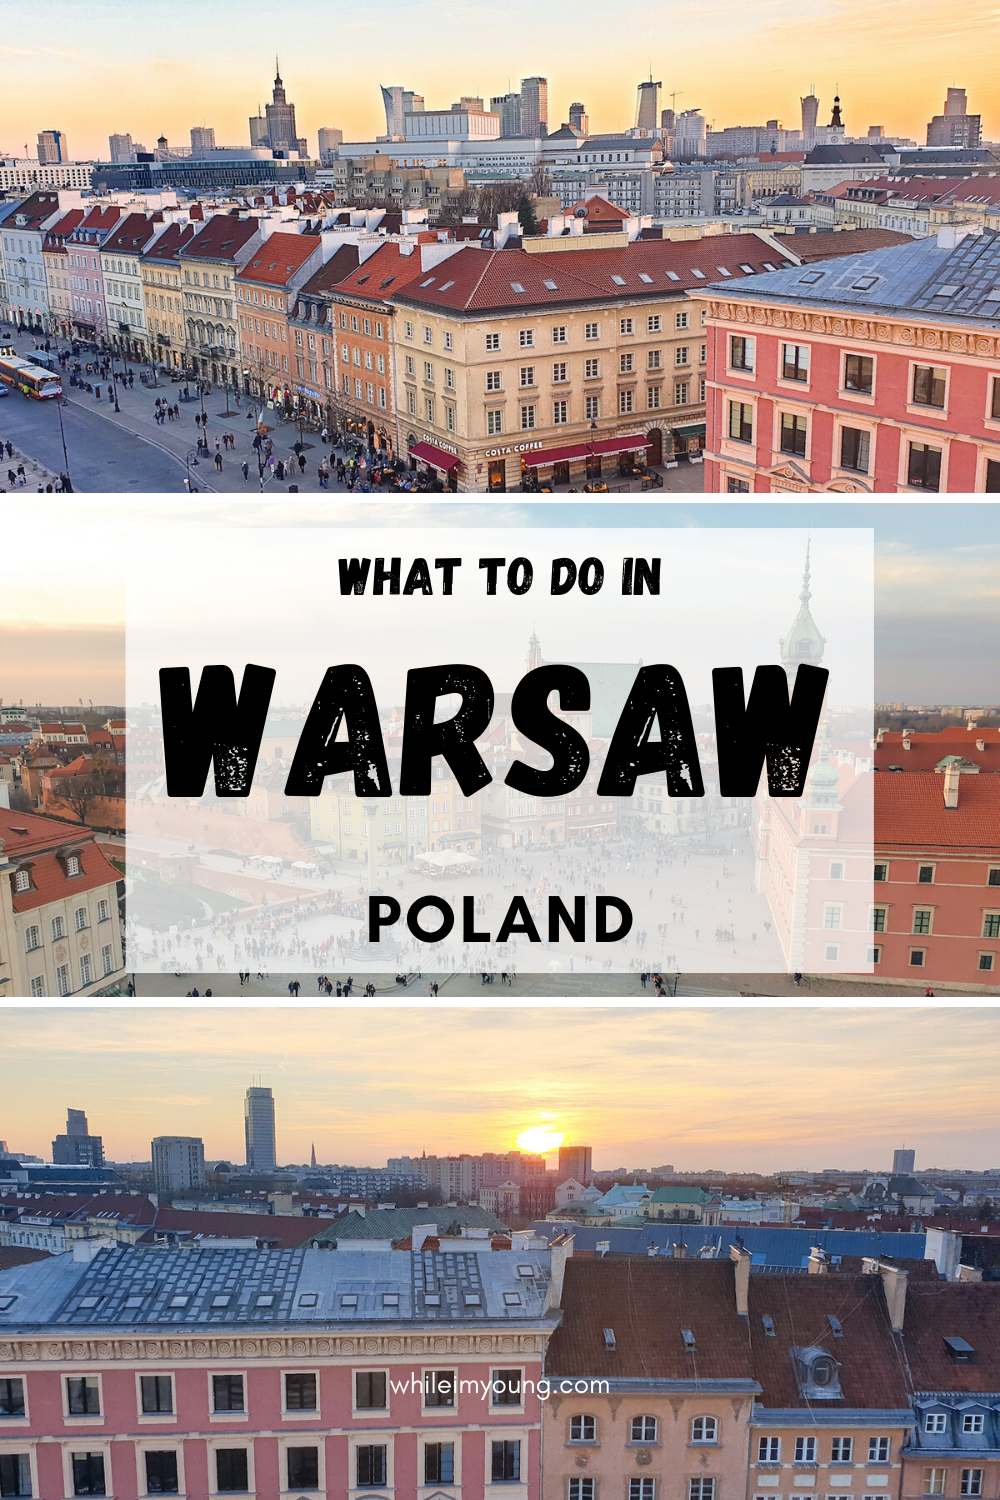 Looking for inspiration for things to do in Warsaw on your Poland city break? Read this comprehensive Warsaw travel guide for a three day Warsaw itinerary covering top attractions and where to eat, drink and stay near the best nightlife spots. Click for more Warsaw pictures and helpful travel tips. Find the best views of Warsaw!  #Warsaw #WhatToDoInWarsaw #Poland #ThingsToDoInPoland #Instagram #Photography #nightlife #bars #food #culture #history #Architecture #sunset